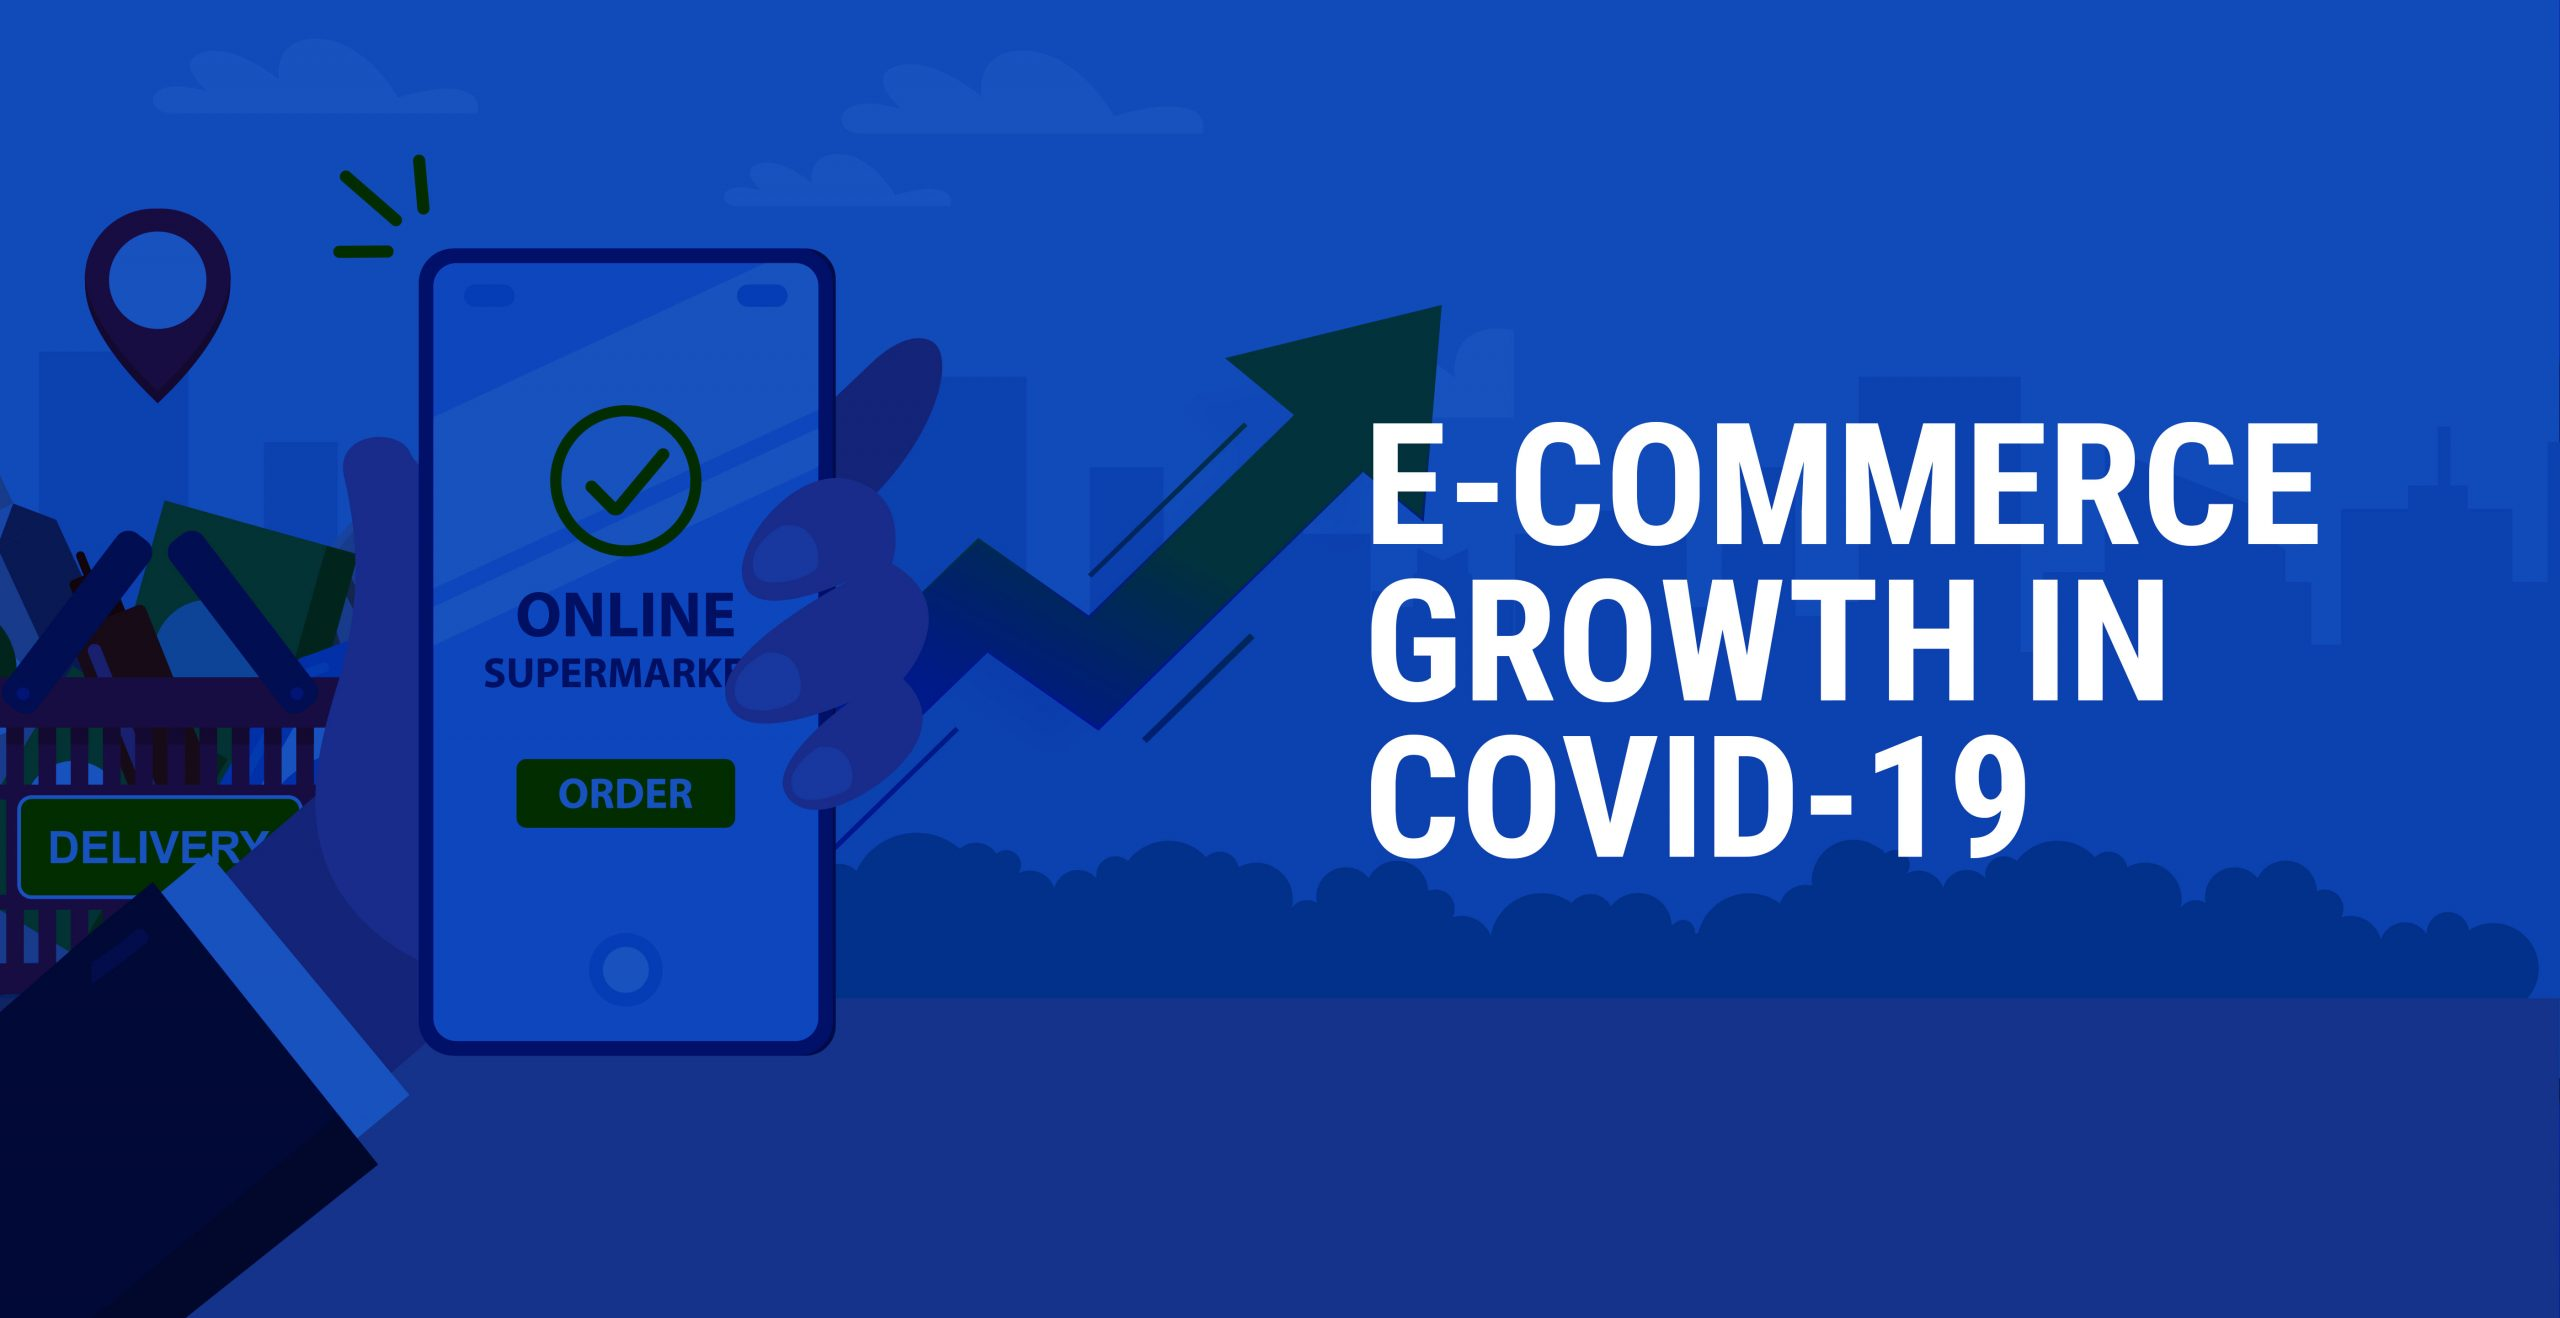 Growth of E-Commerce During Pandemic